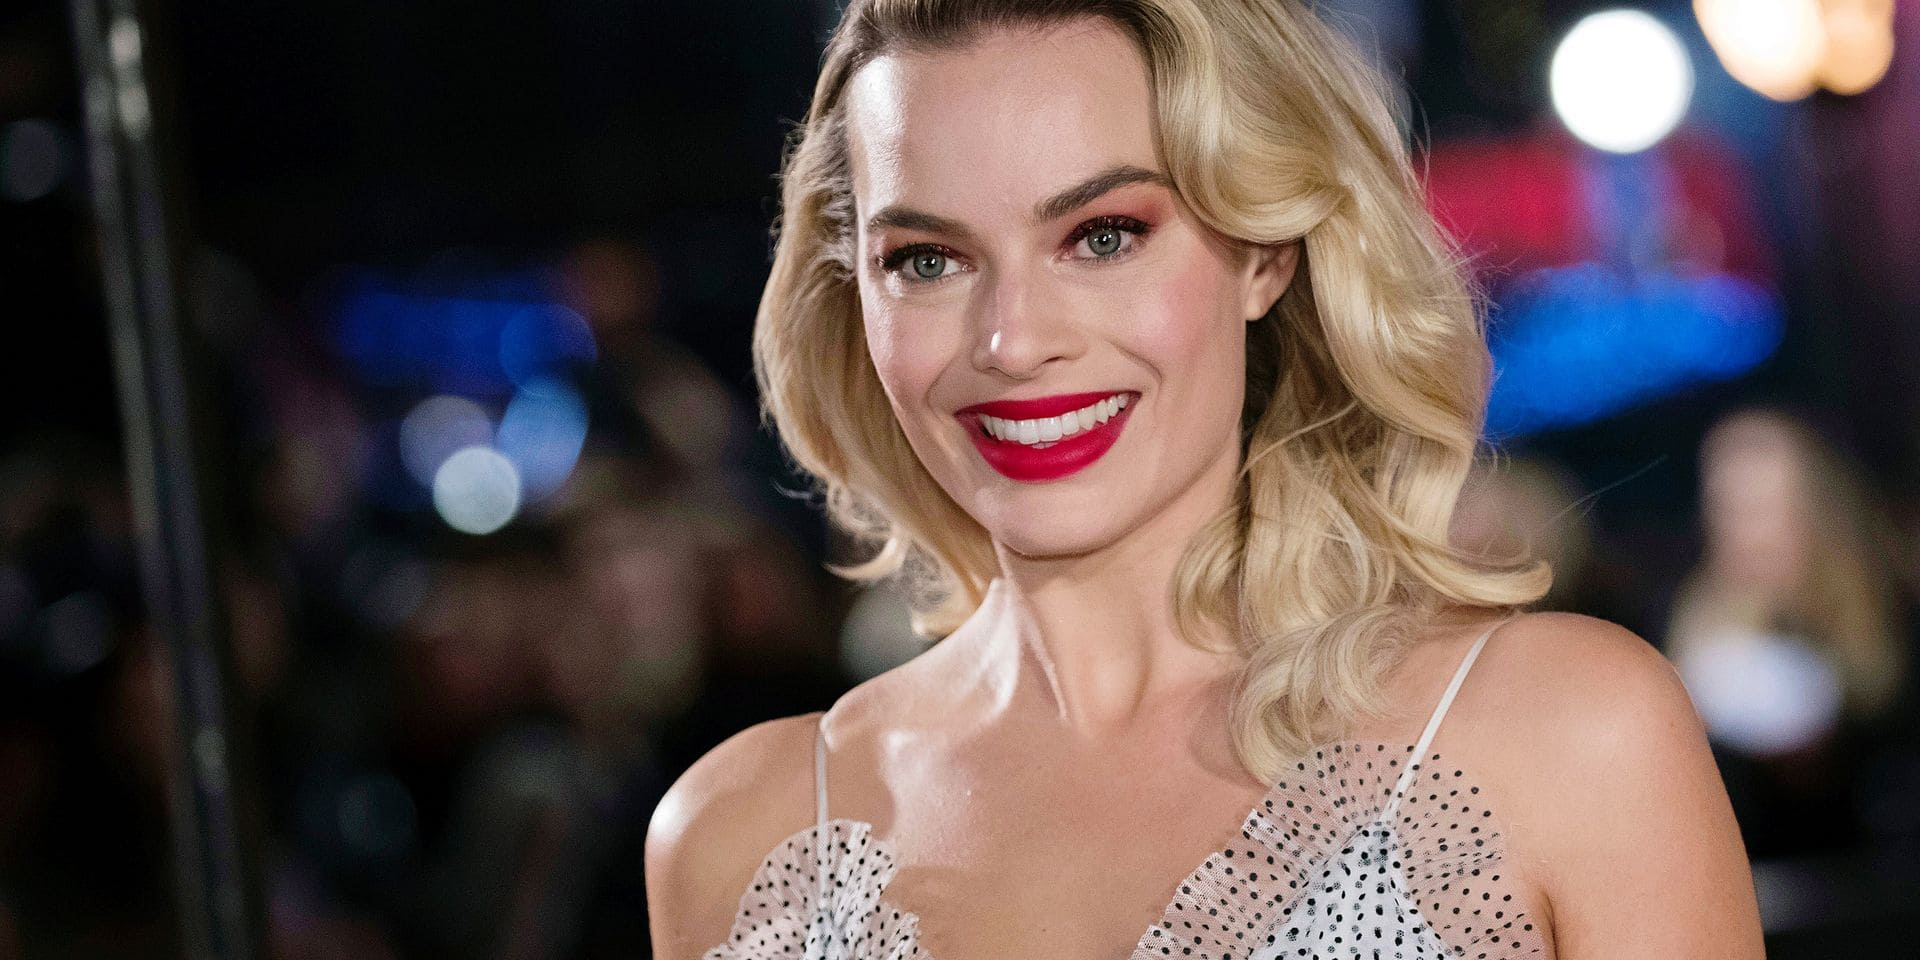 "FILE - In this Monday, Dec. 10, 2018, file photo, actress Margot Robbie poses for photographers upon her arrival at the premiere of the film ""Mary Queen of Scots,"" in London. Robbie will bring the Barbie doll to life in a live-action film. Mattel and Warner Bros. Pictures announced Tuesday, Jan. 8, 2019, that Robbie will star as the iconic doll in the franchise's first-ever live-action film. The 28-year-old ""Suicide Squad"" actress will also co-produce the film under her LuckyChap Entertainment banner. (Photo by Vianney Le Caer/Invision/AP, File)"